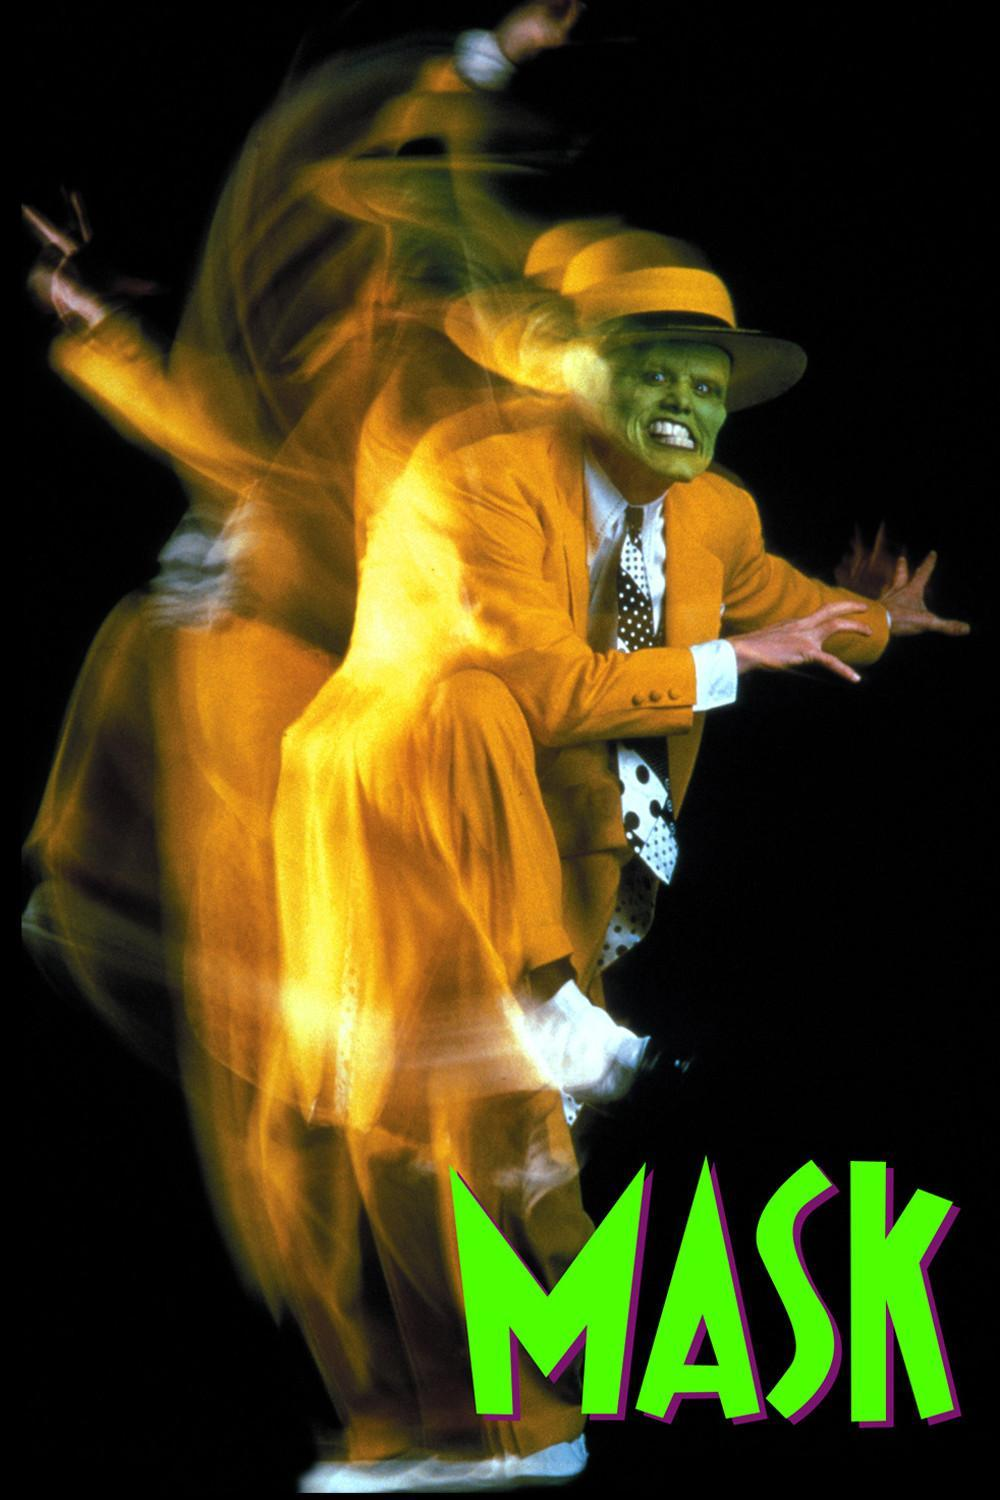 The Mask Movie Poster